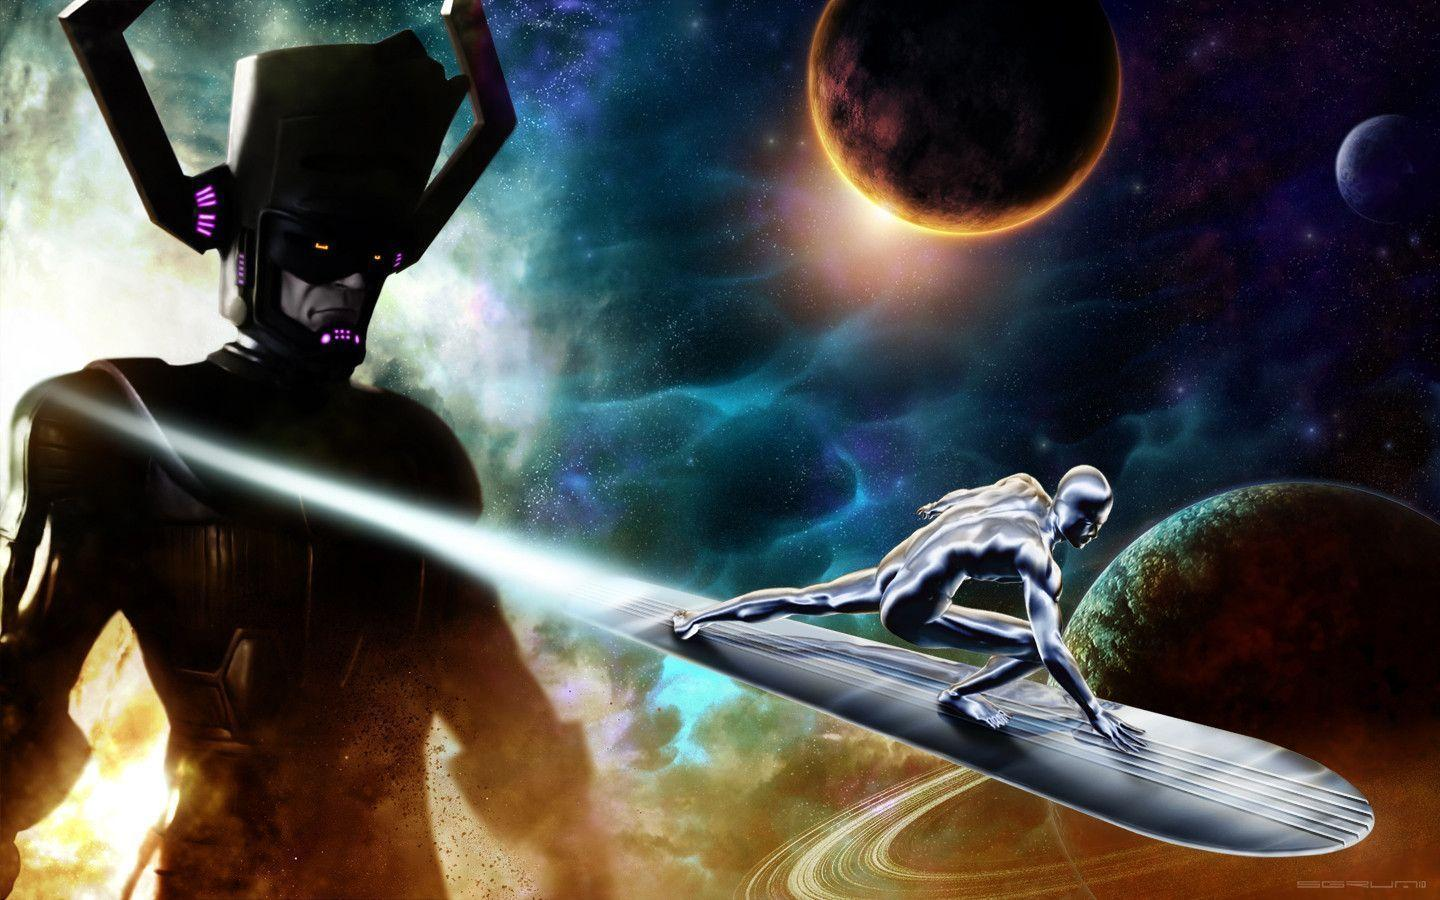 Silver Surfer Computer Wallpapers, Desktop Backgrounds 1440x900 Id